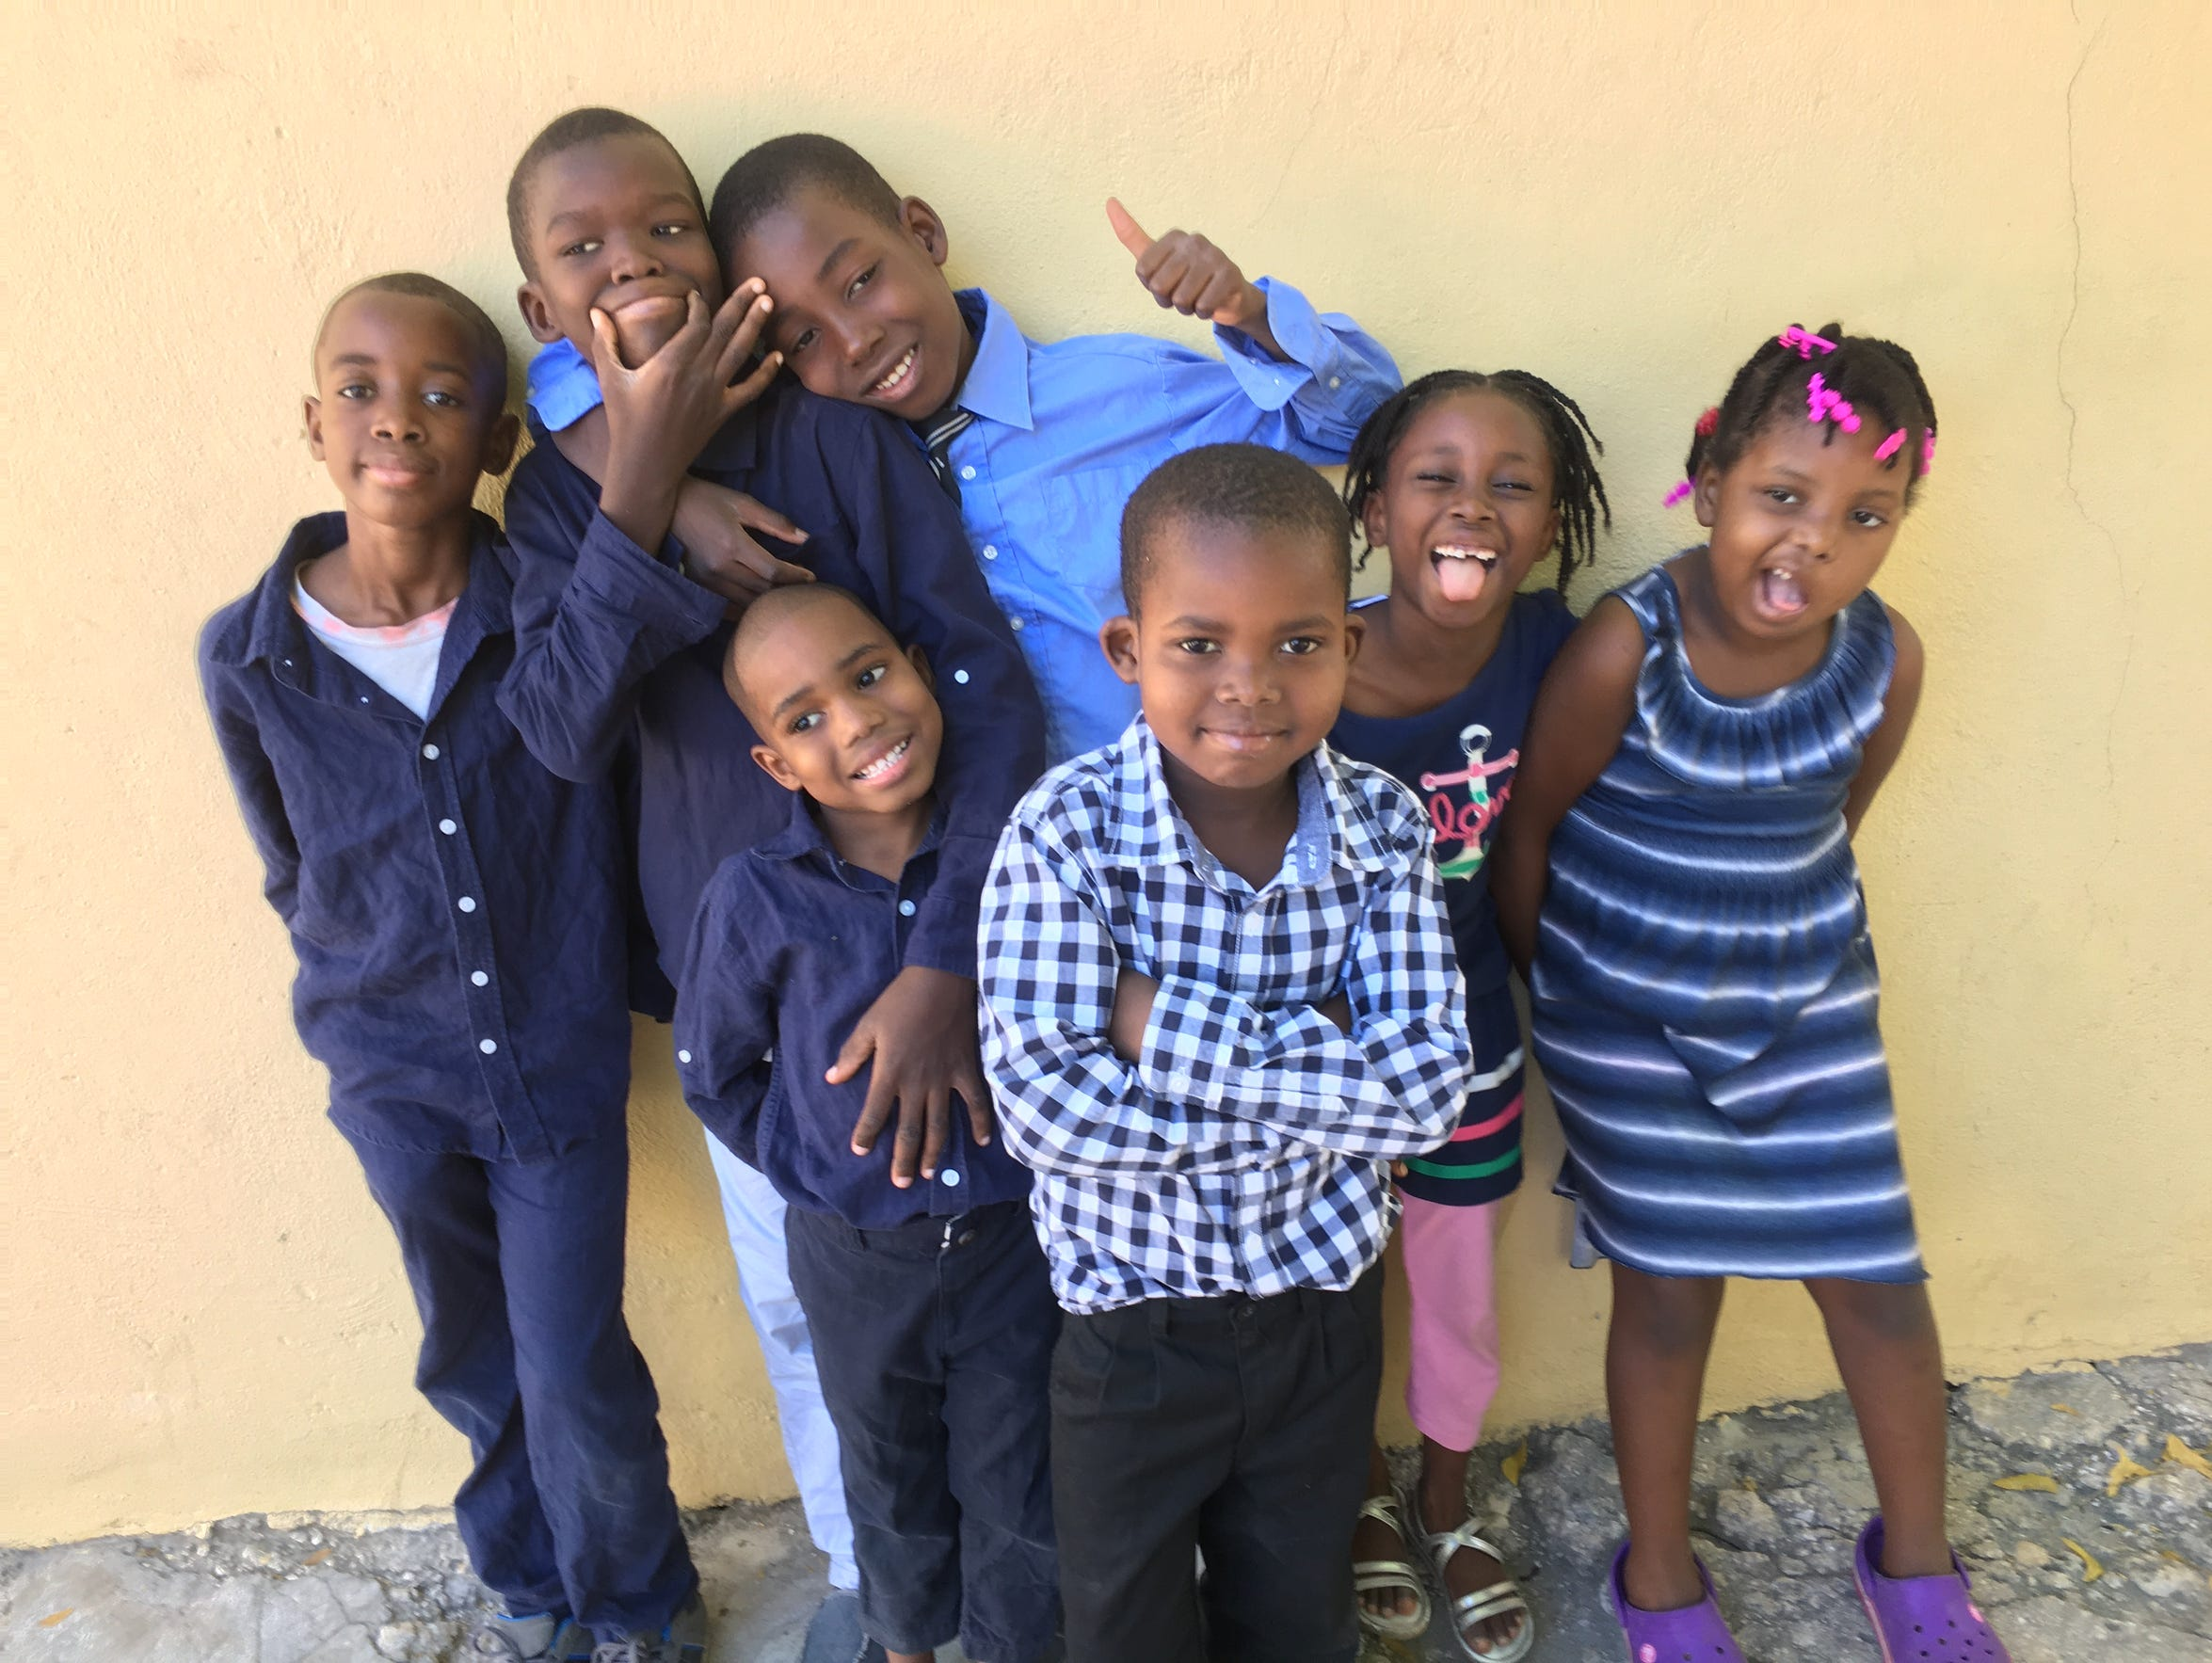 Chika, right, and her friends from the Have Faith Haiti